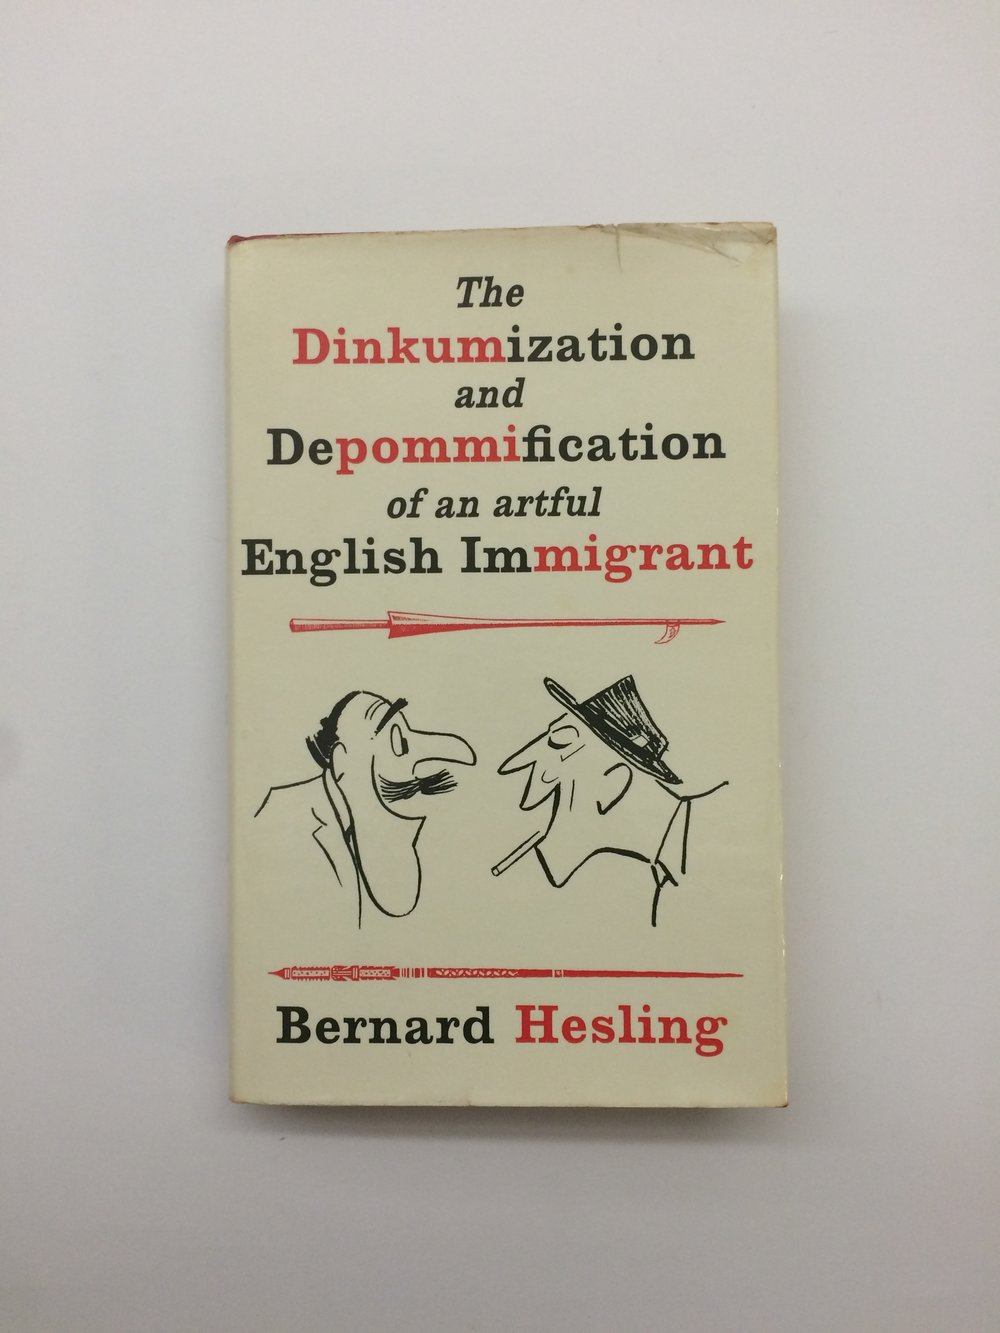 'The Dinkumization and Depommification of an artful English Immigrant' by Bernard Hesling- Signed copy